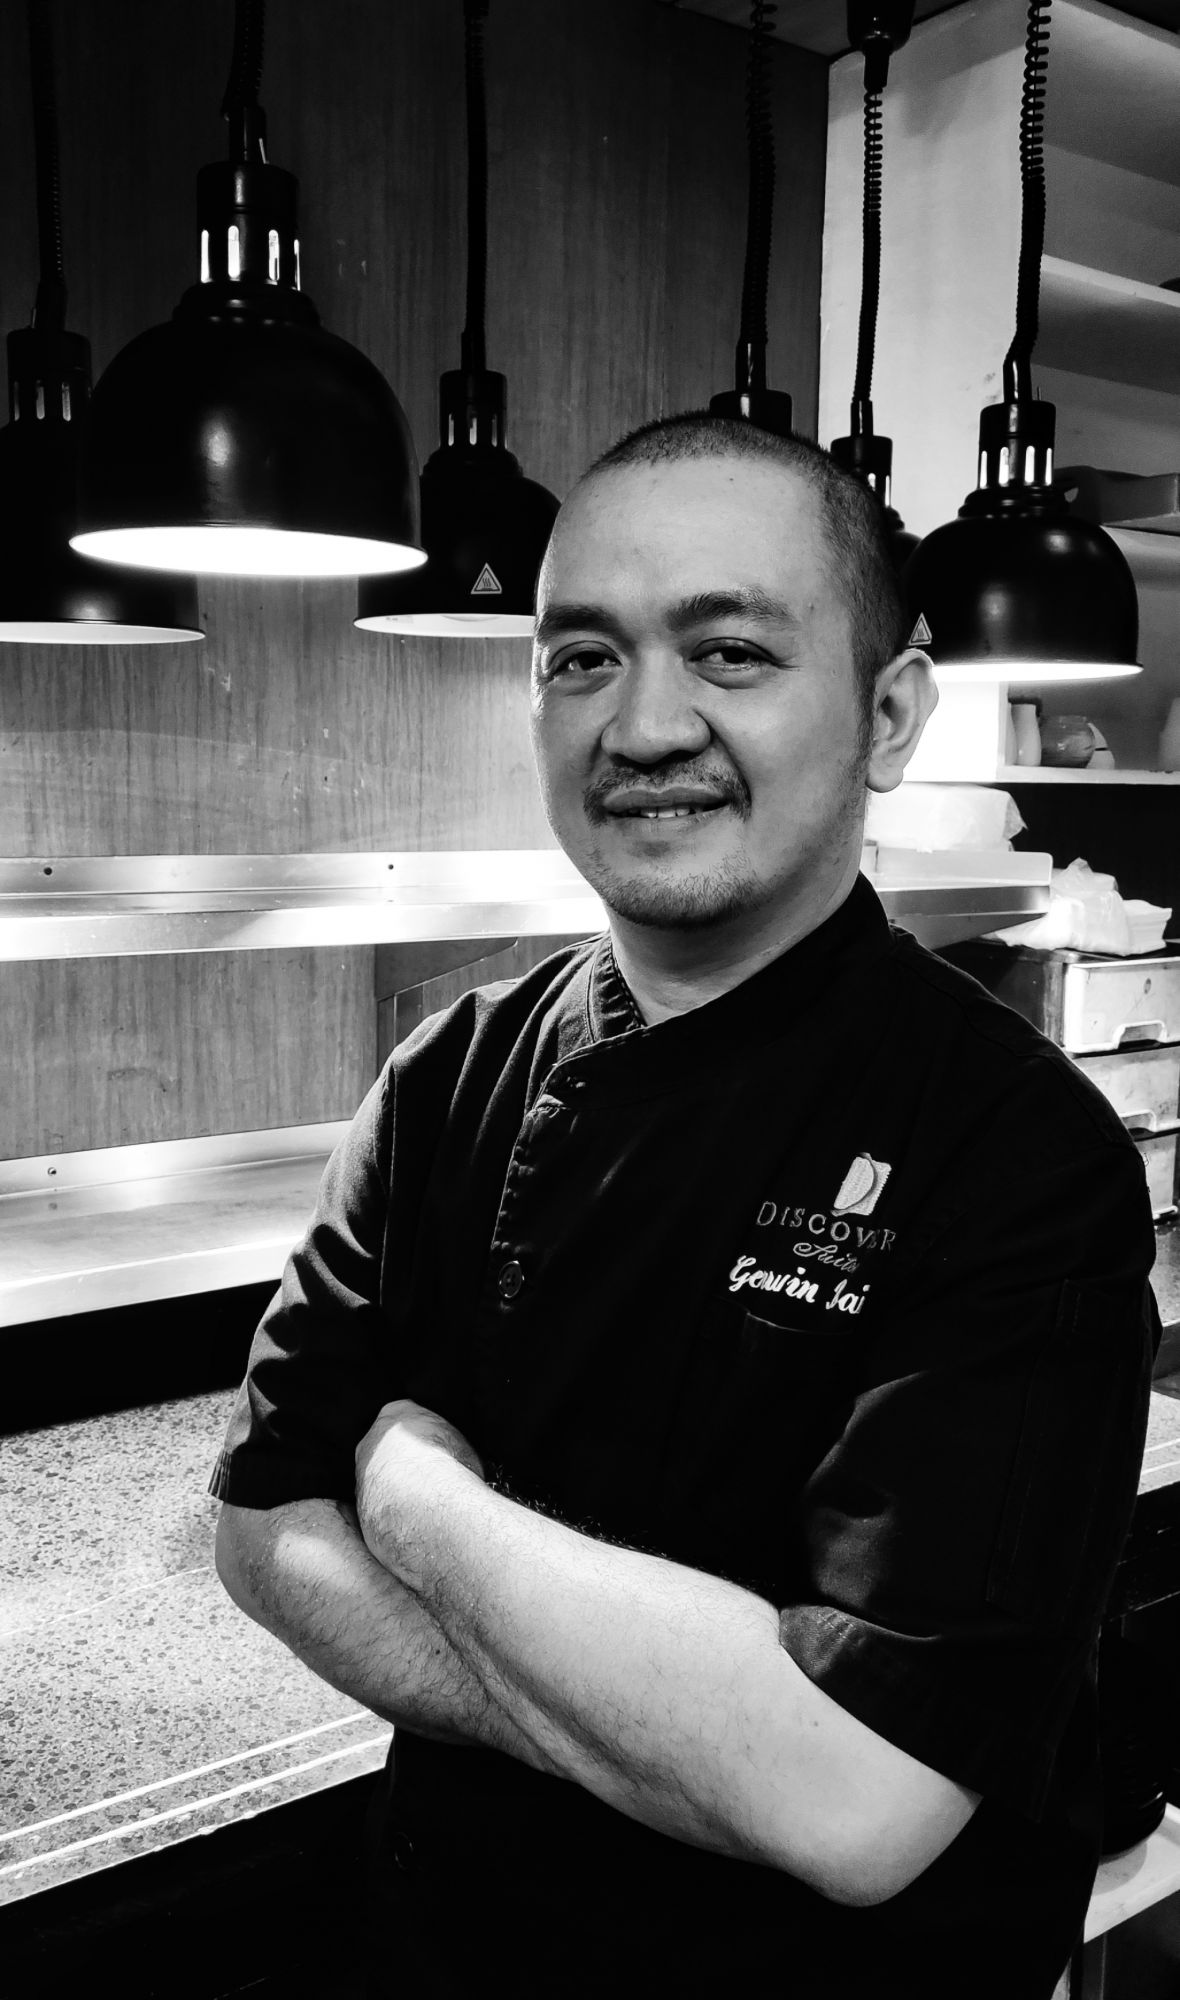 Restaurant Verbena Welcomes 22 Prime Steakhouse with New Executive Chef